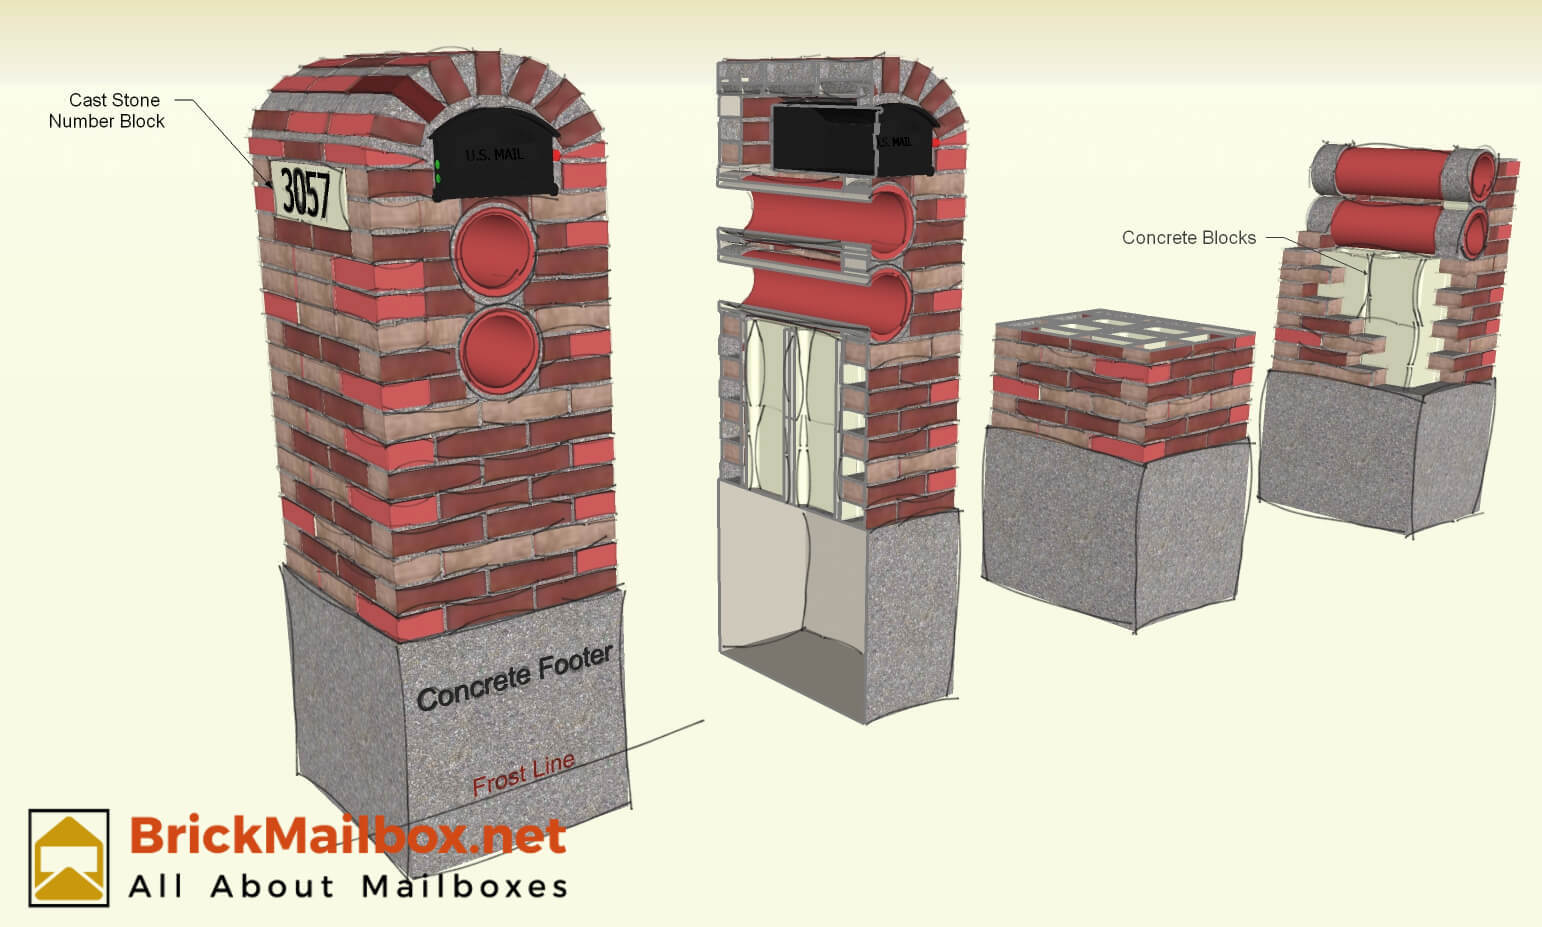 Plans For A Brick Mailbox Project Brickmailbox Net